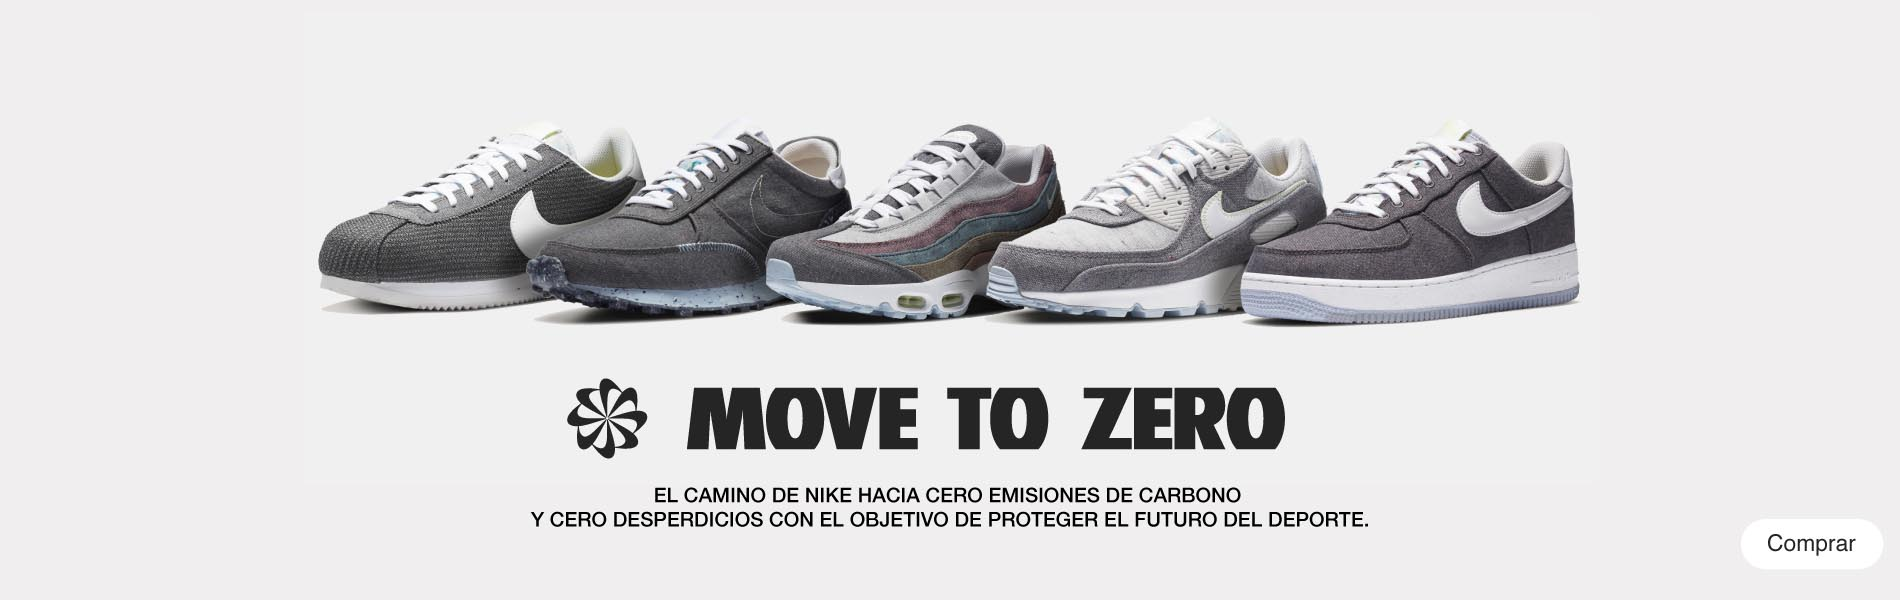 NIKE SP MOVE TO ZERO